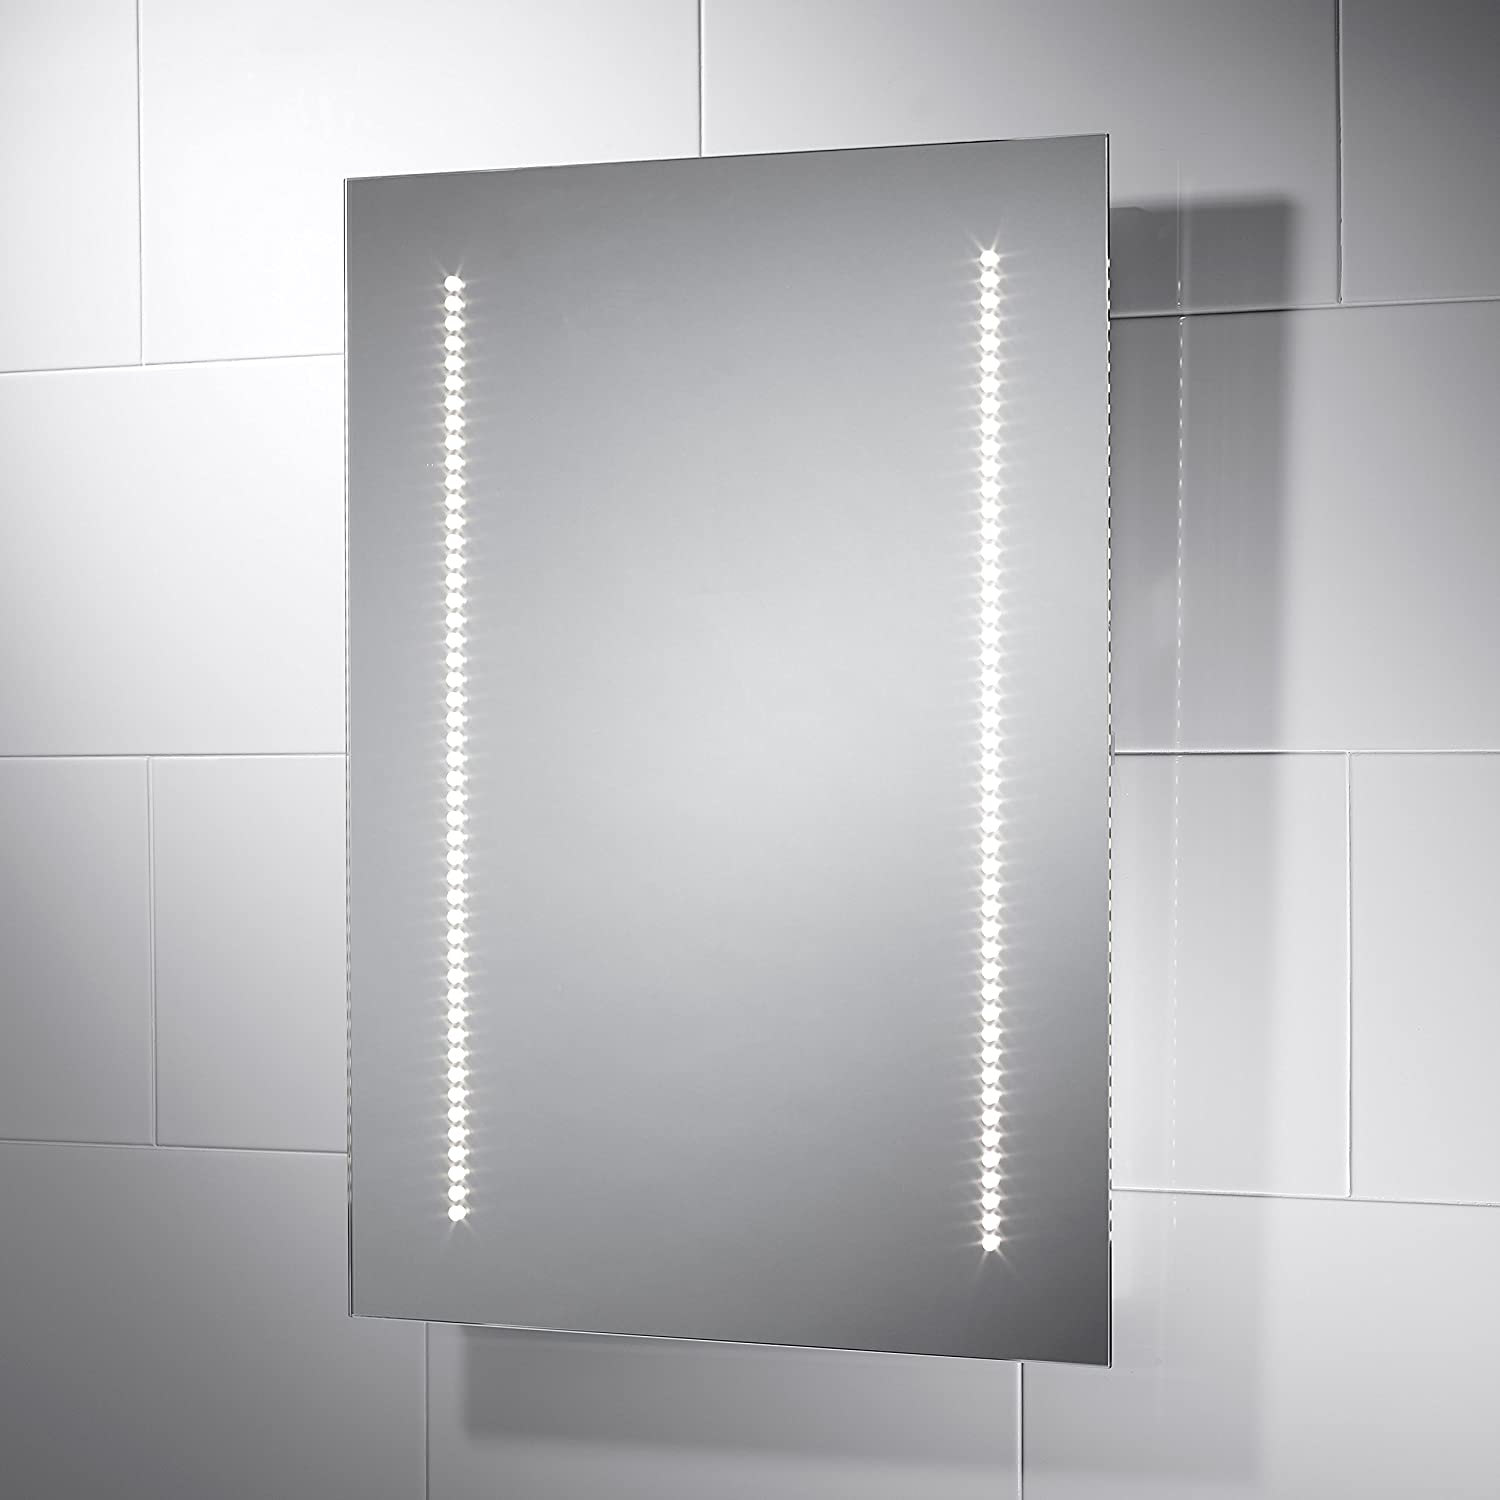 Pebble Grey Rectangular Vienna LED Illuminated Bathroom Mirror With Lights Size 500mmW X 700mmH Infra Red Sensor Switch Dual Voltage Shaver